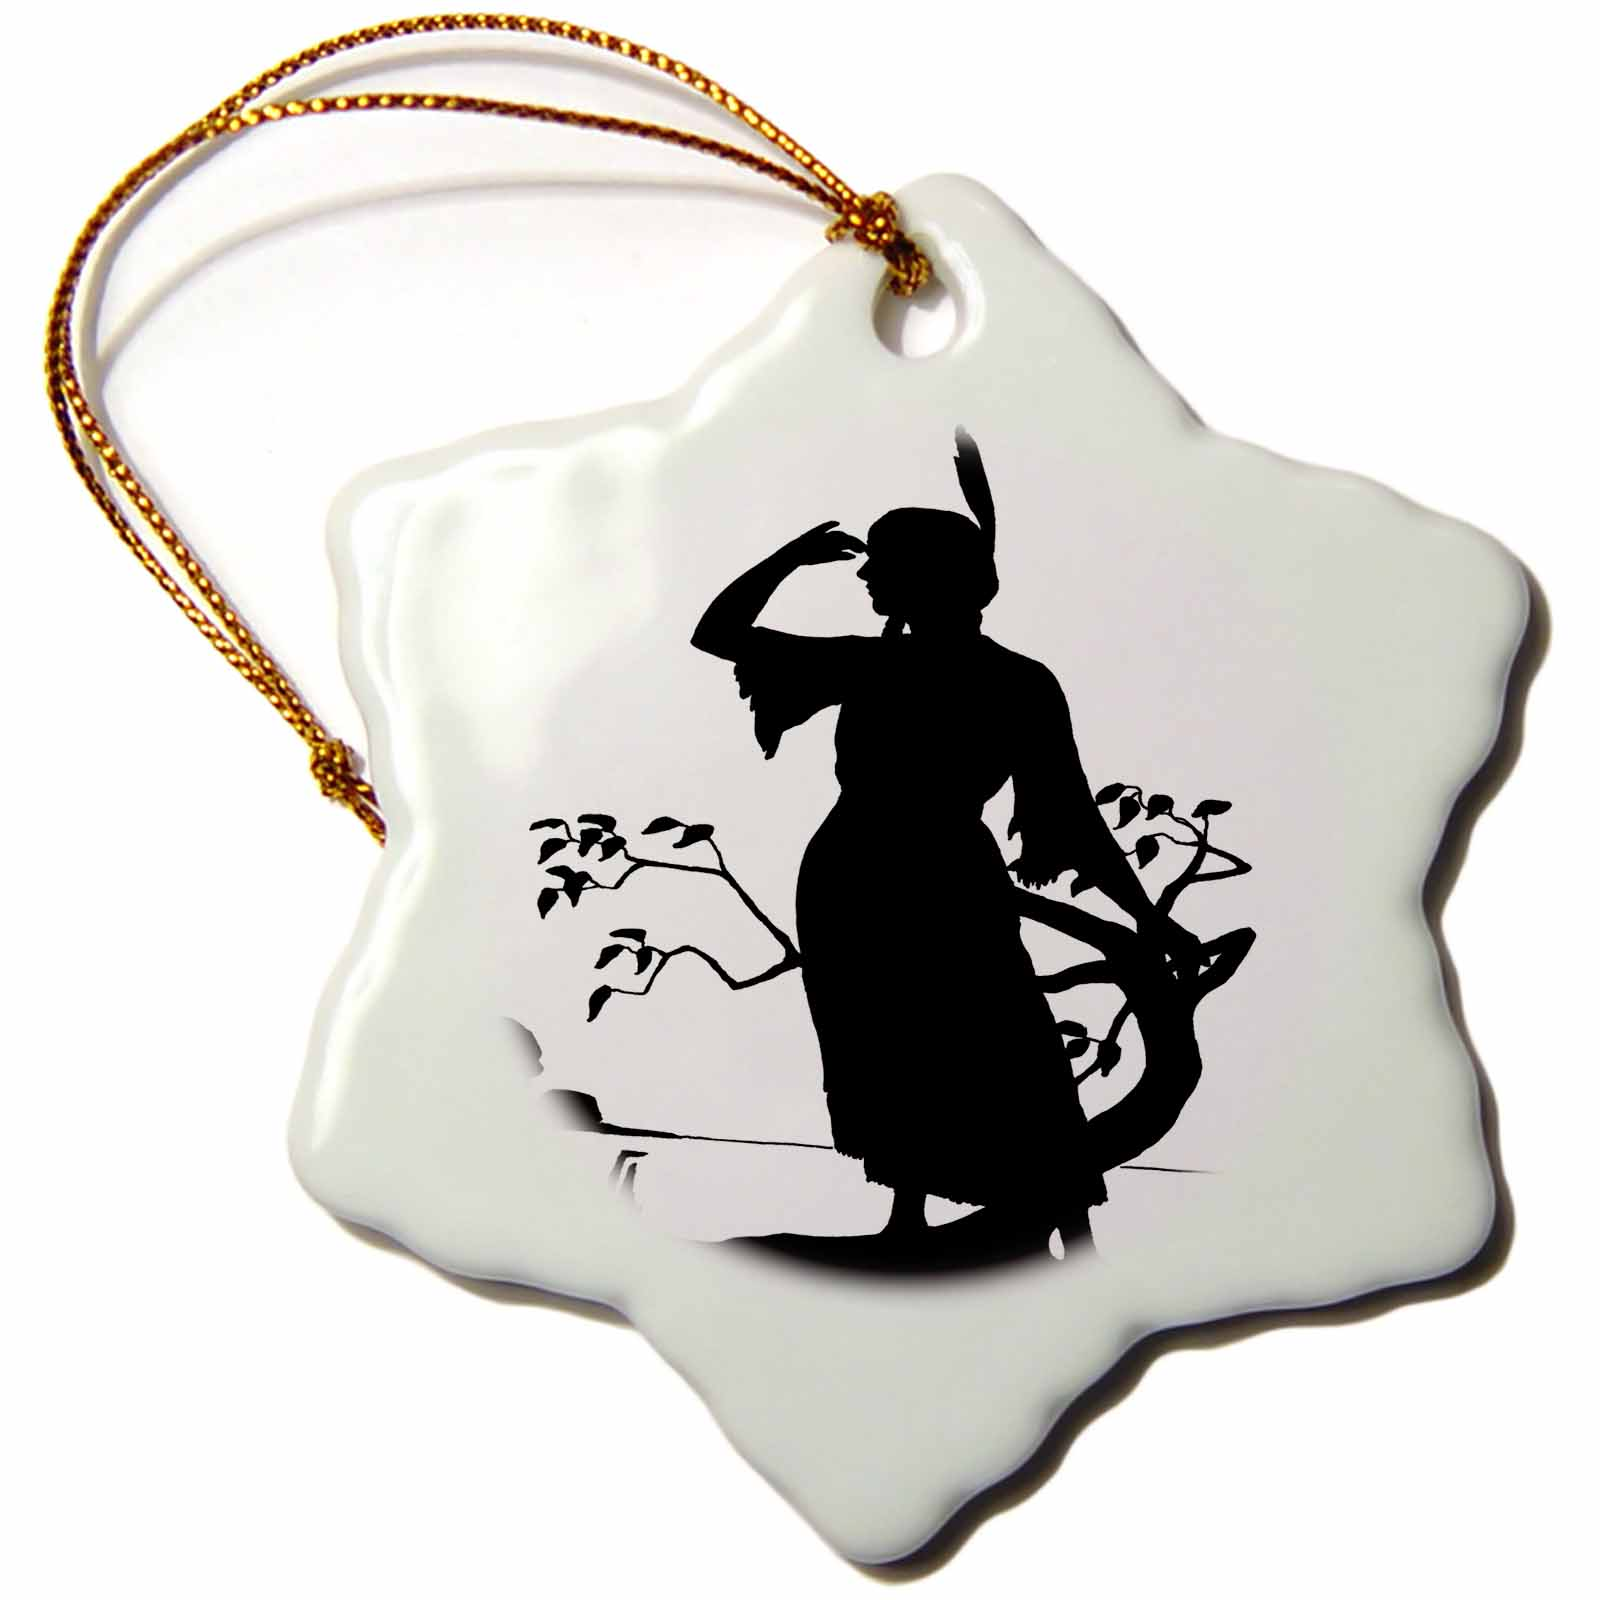 3dRose Image of Silhouette Of Native American Woman - Snowflake Ornament, 3-inch